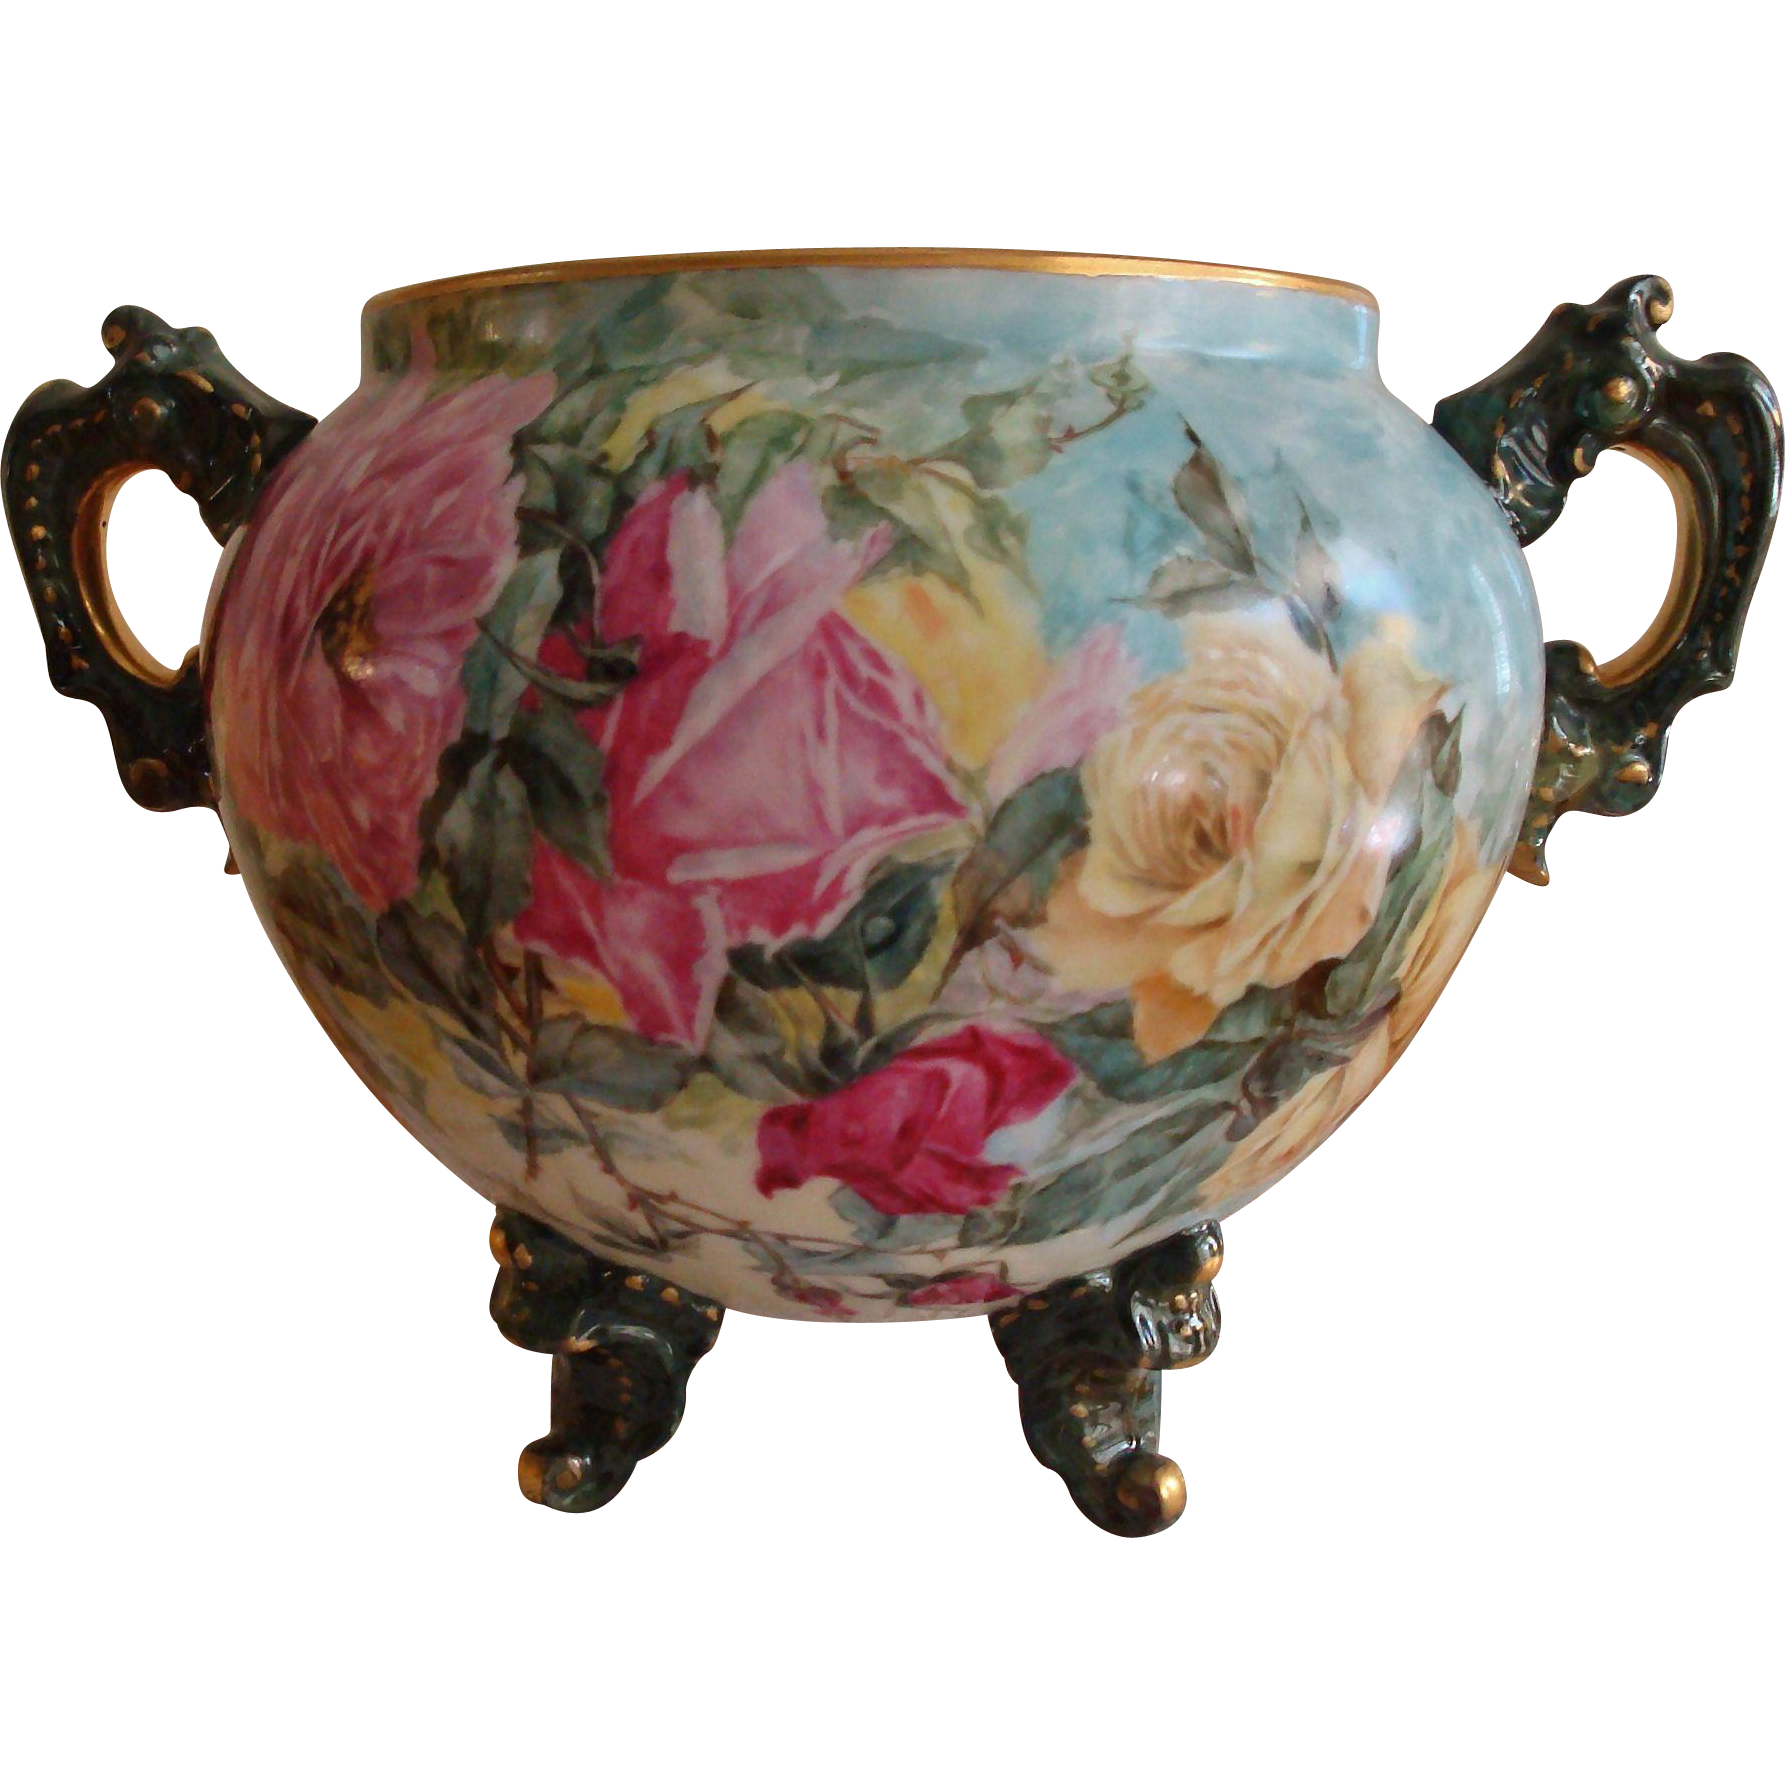 Museum Quality Antique Limoges France Hand Painted Huge Porcelain French Jardiniere Vase Spectacular Roses.